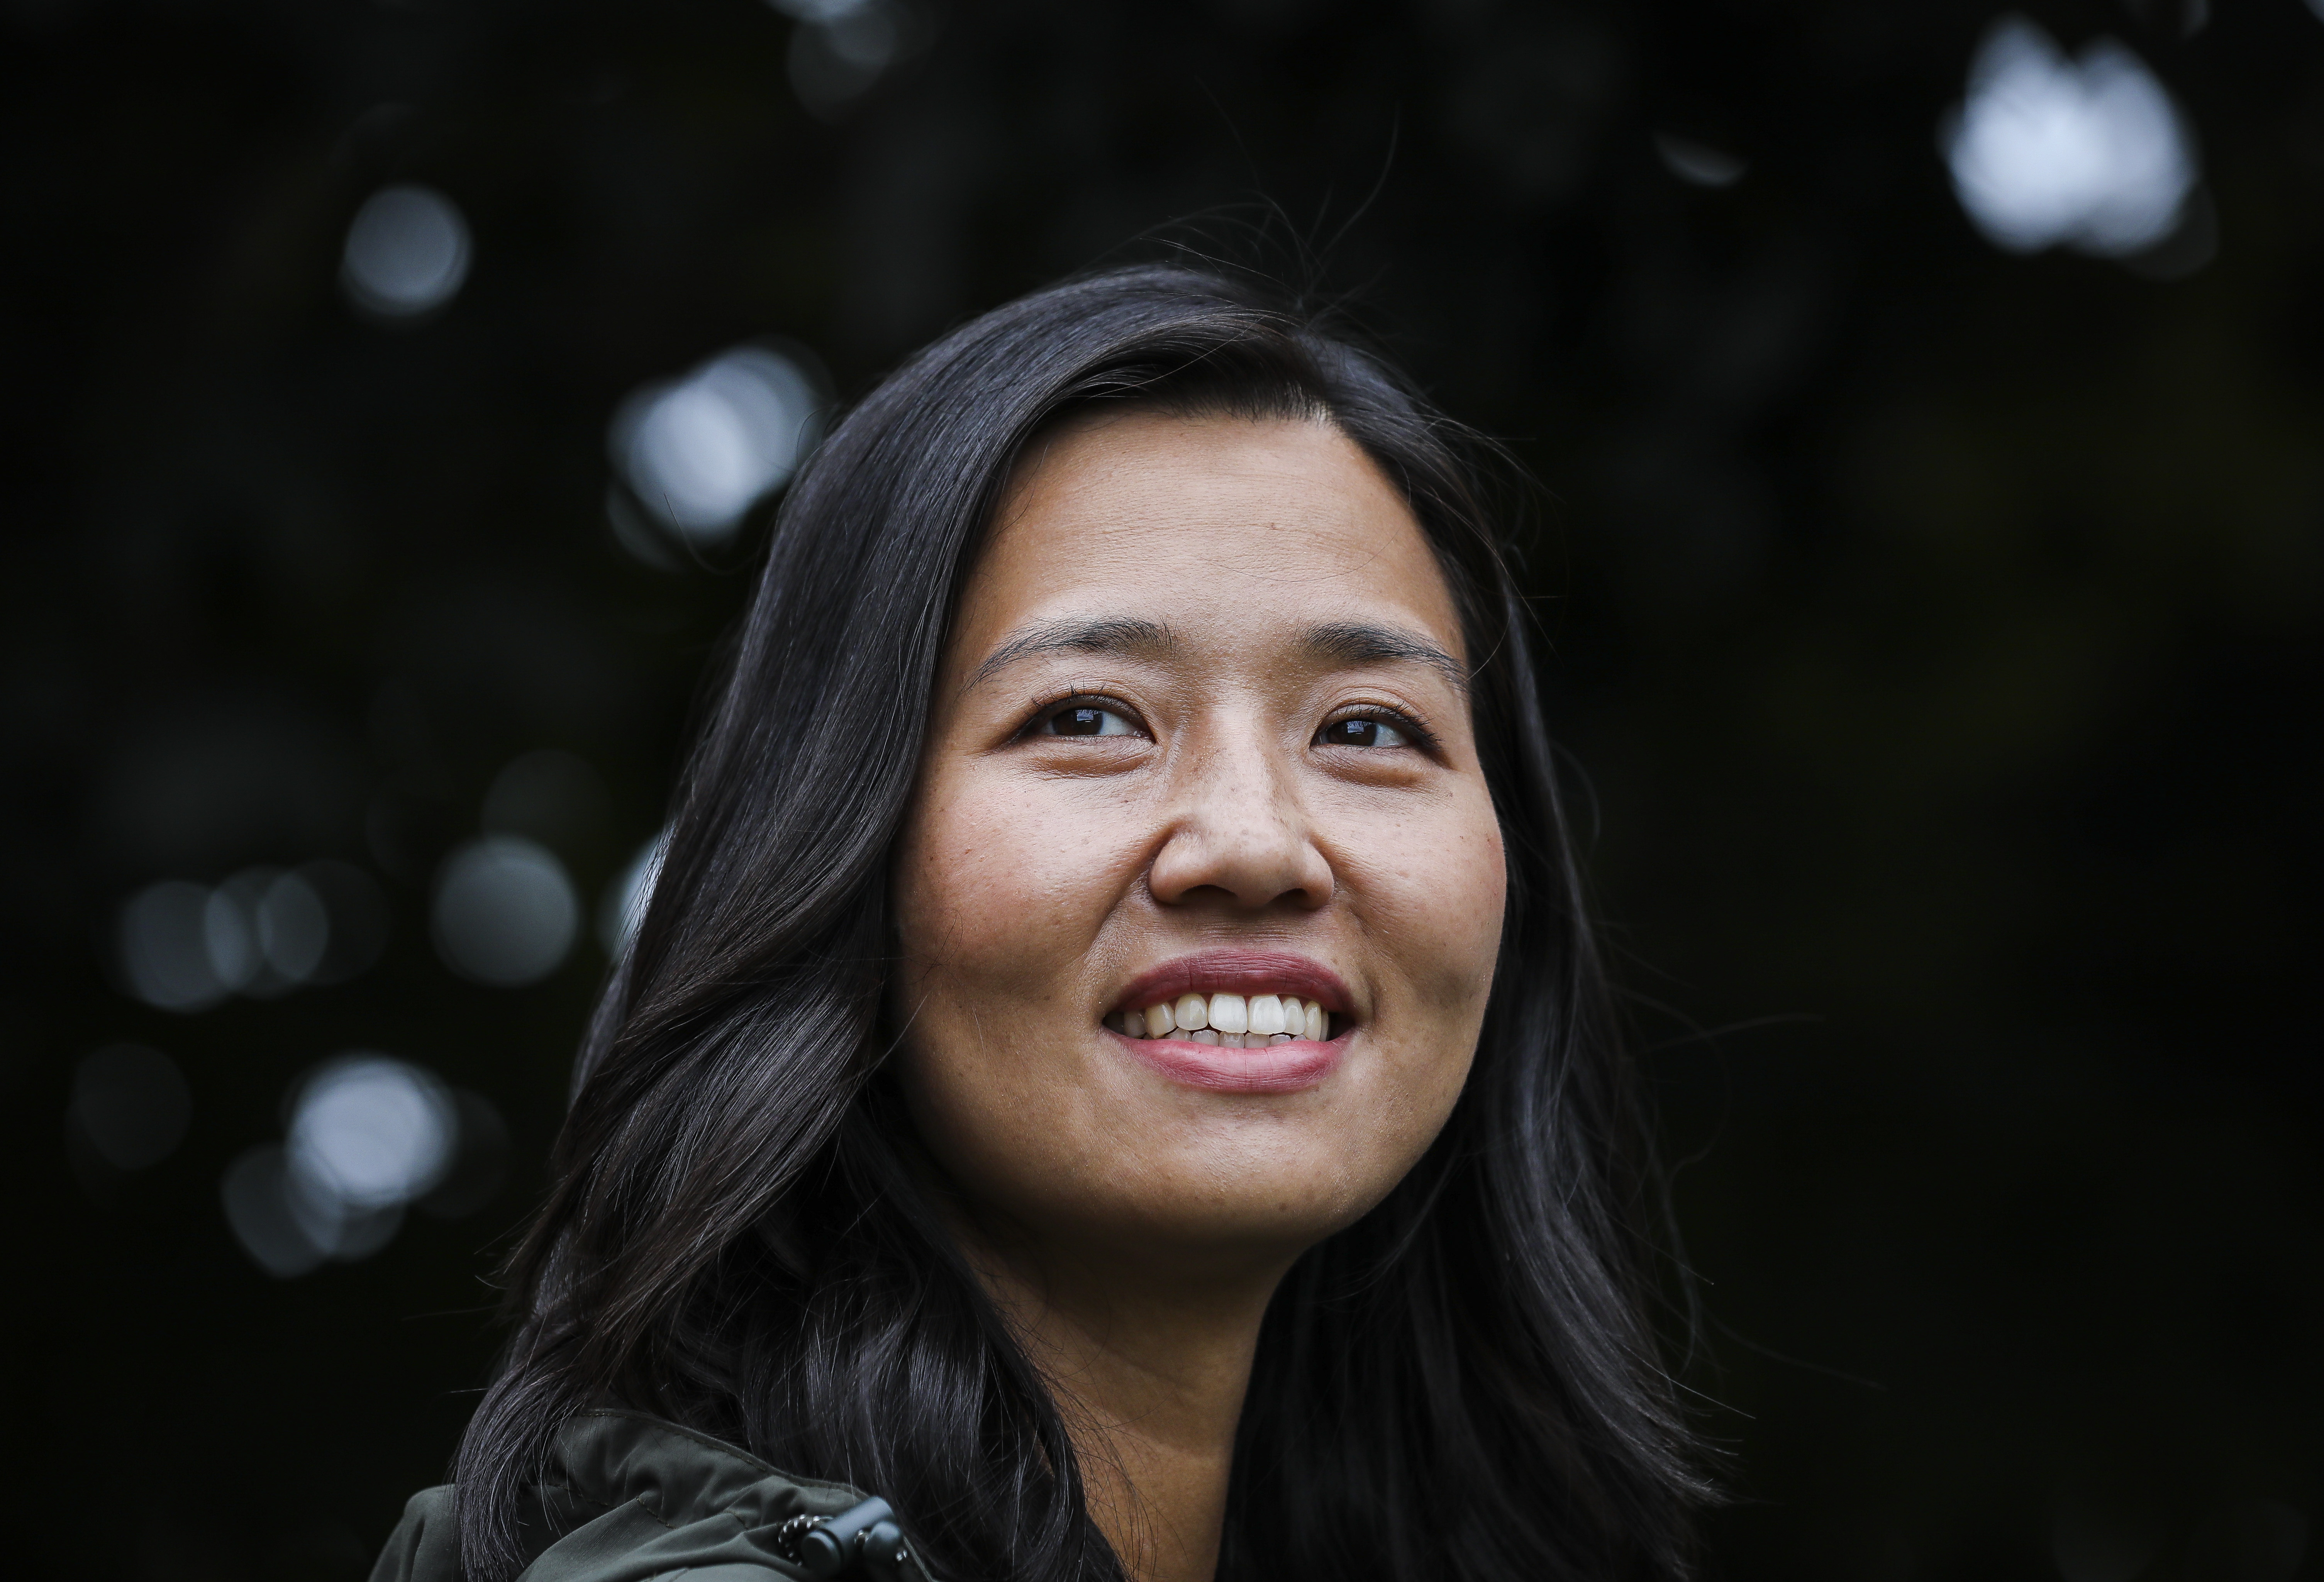 Closeup on a woman's smiling face in front of a dark background.